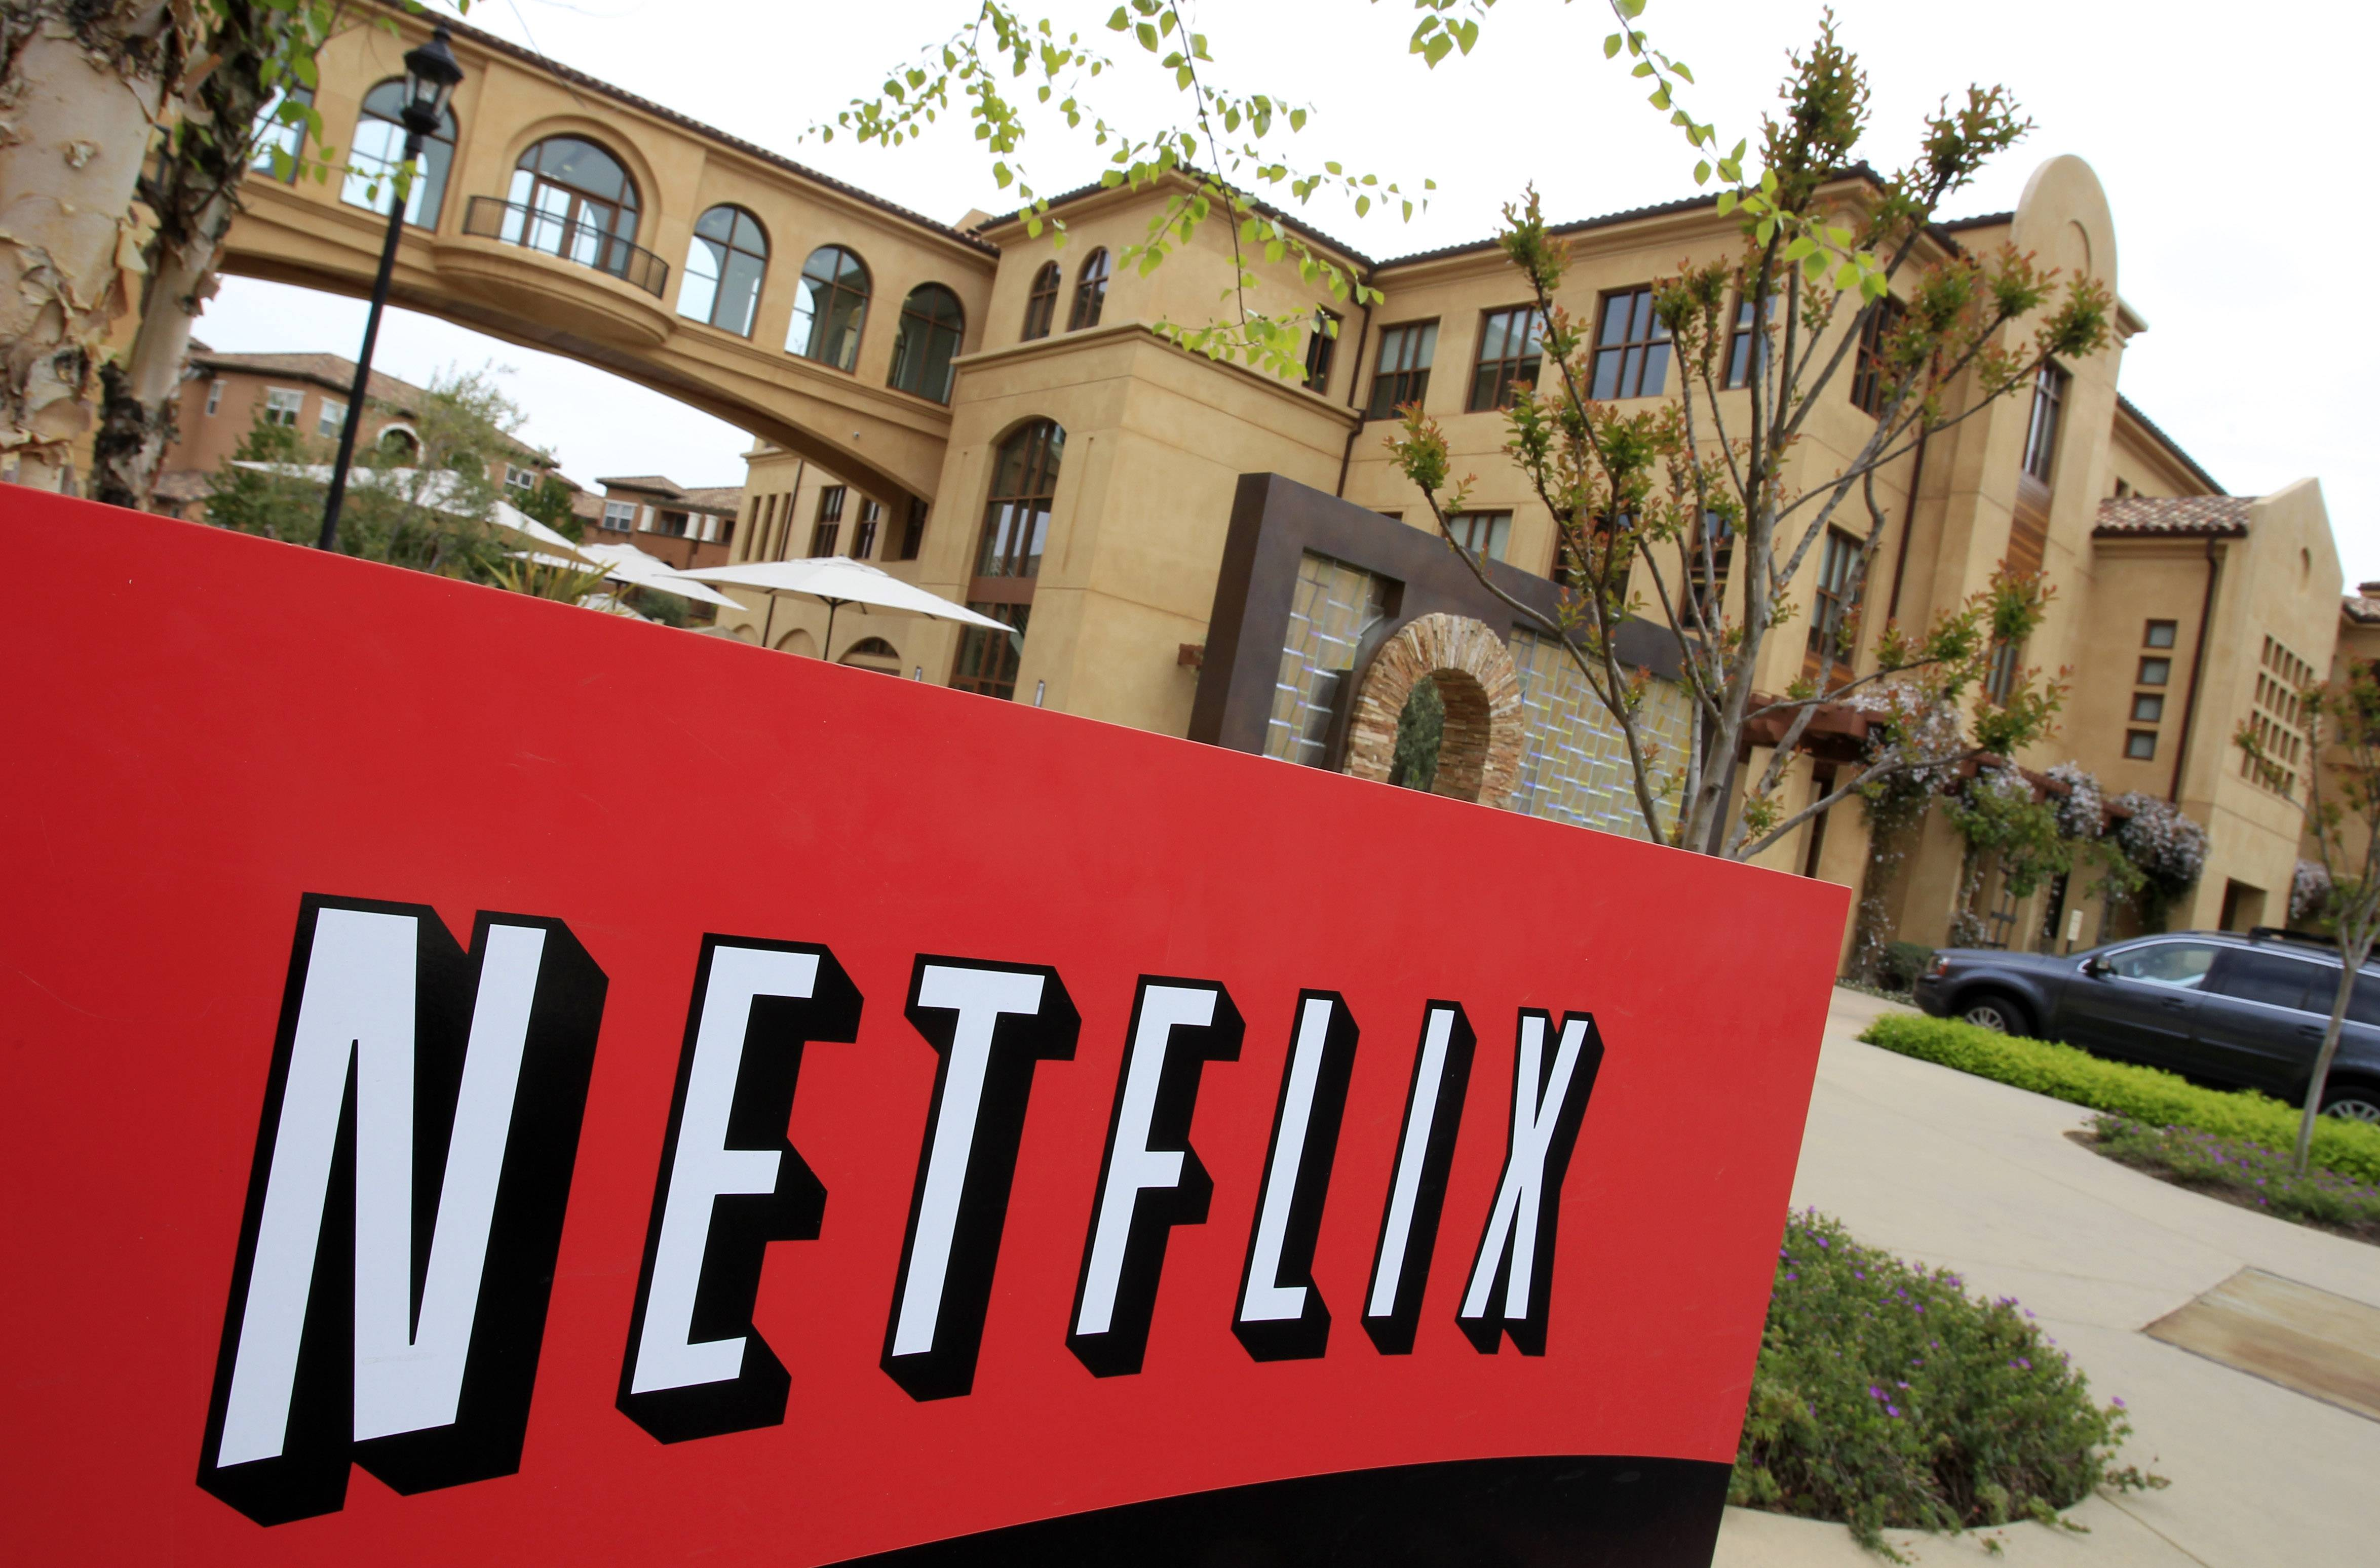 Netflix increased its share of fixed-line Internet traffic in North America in the first half of 2014, accounting for 34 percent of data flowing to consumers during peak times, up from 32 percent in the latter half of 2013.